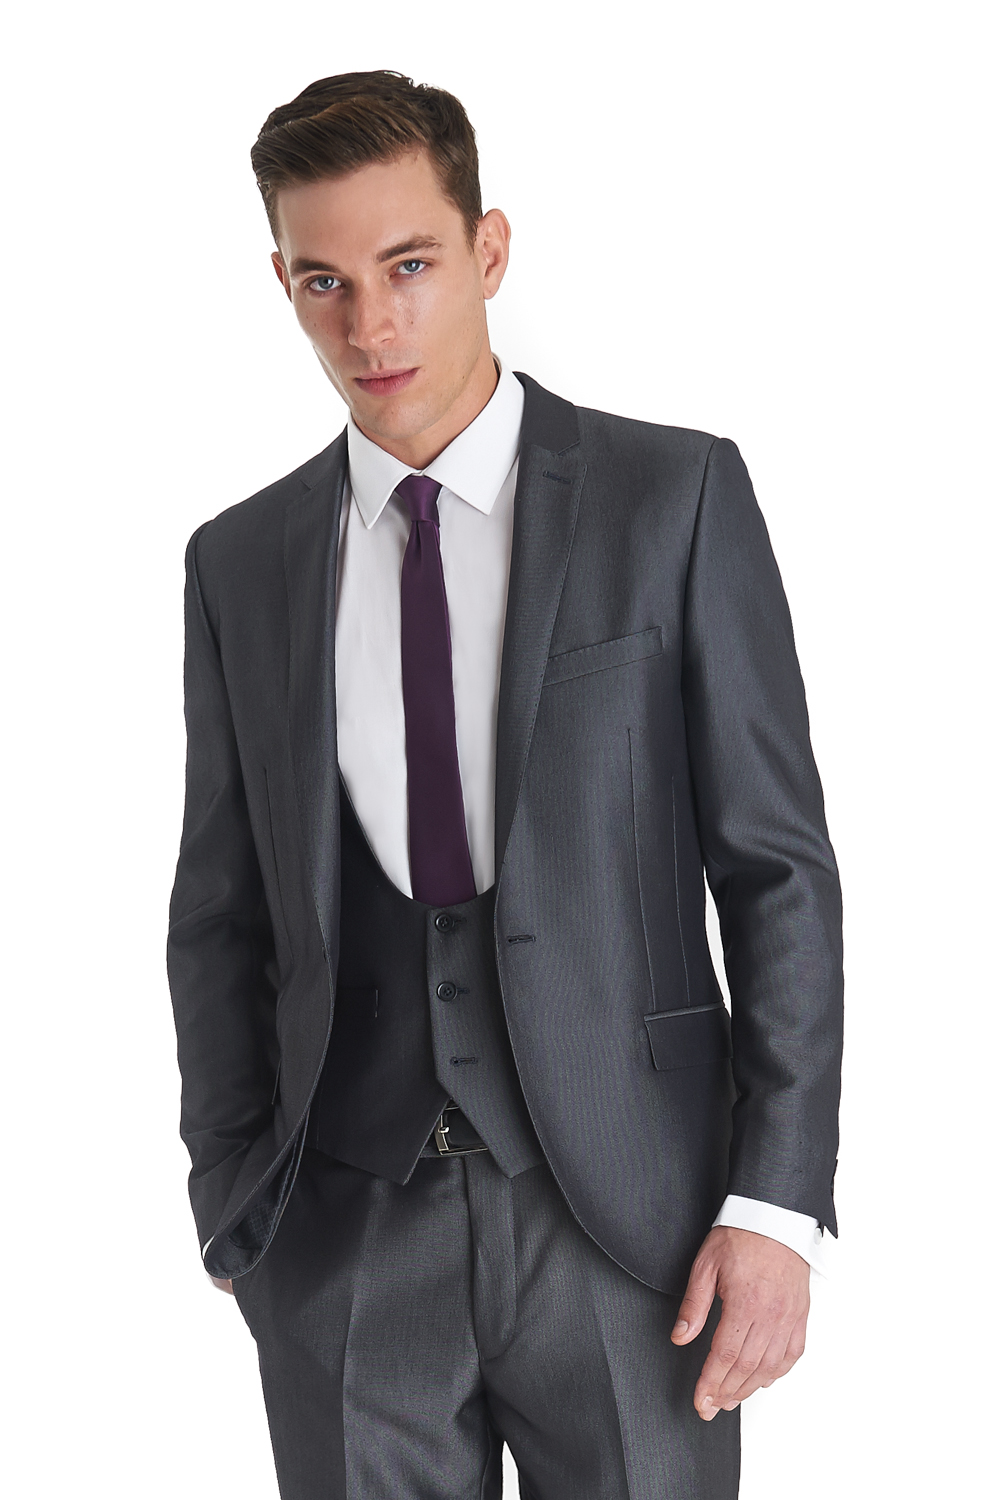 """""""A suit jacket should come down to the first knuckle on your thumb. Too many people are cutting short jackets now, and they just make men look too heavy in the middle."""""""